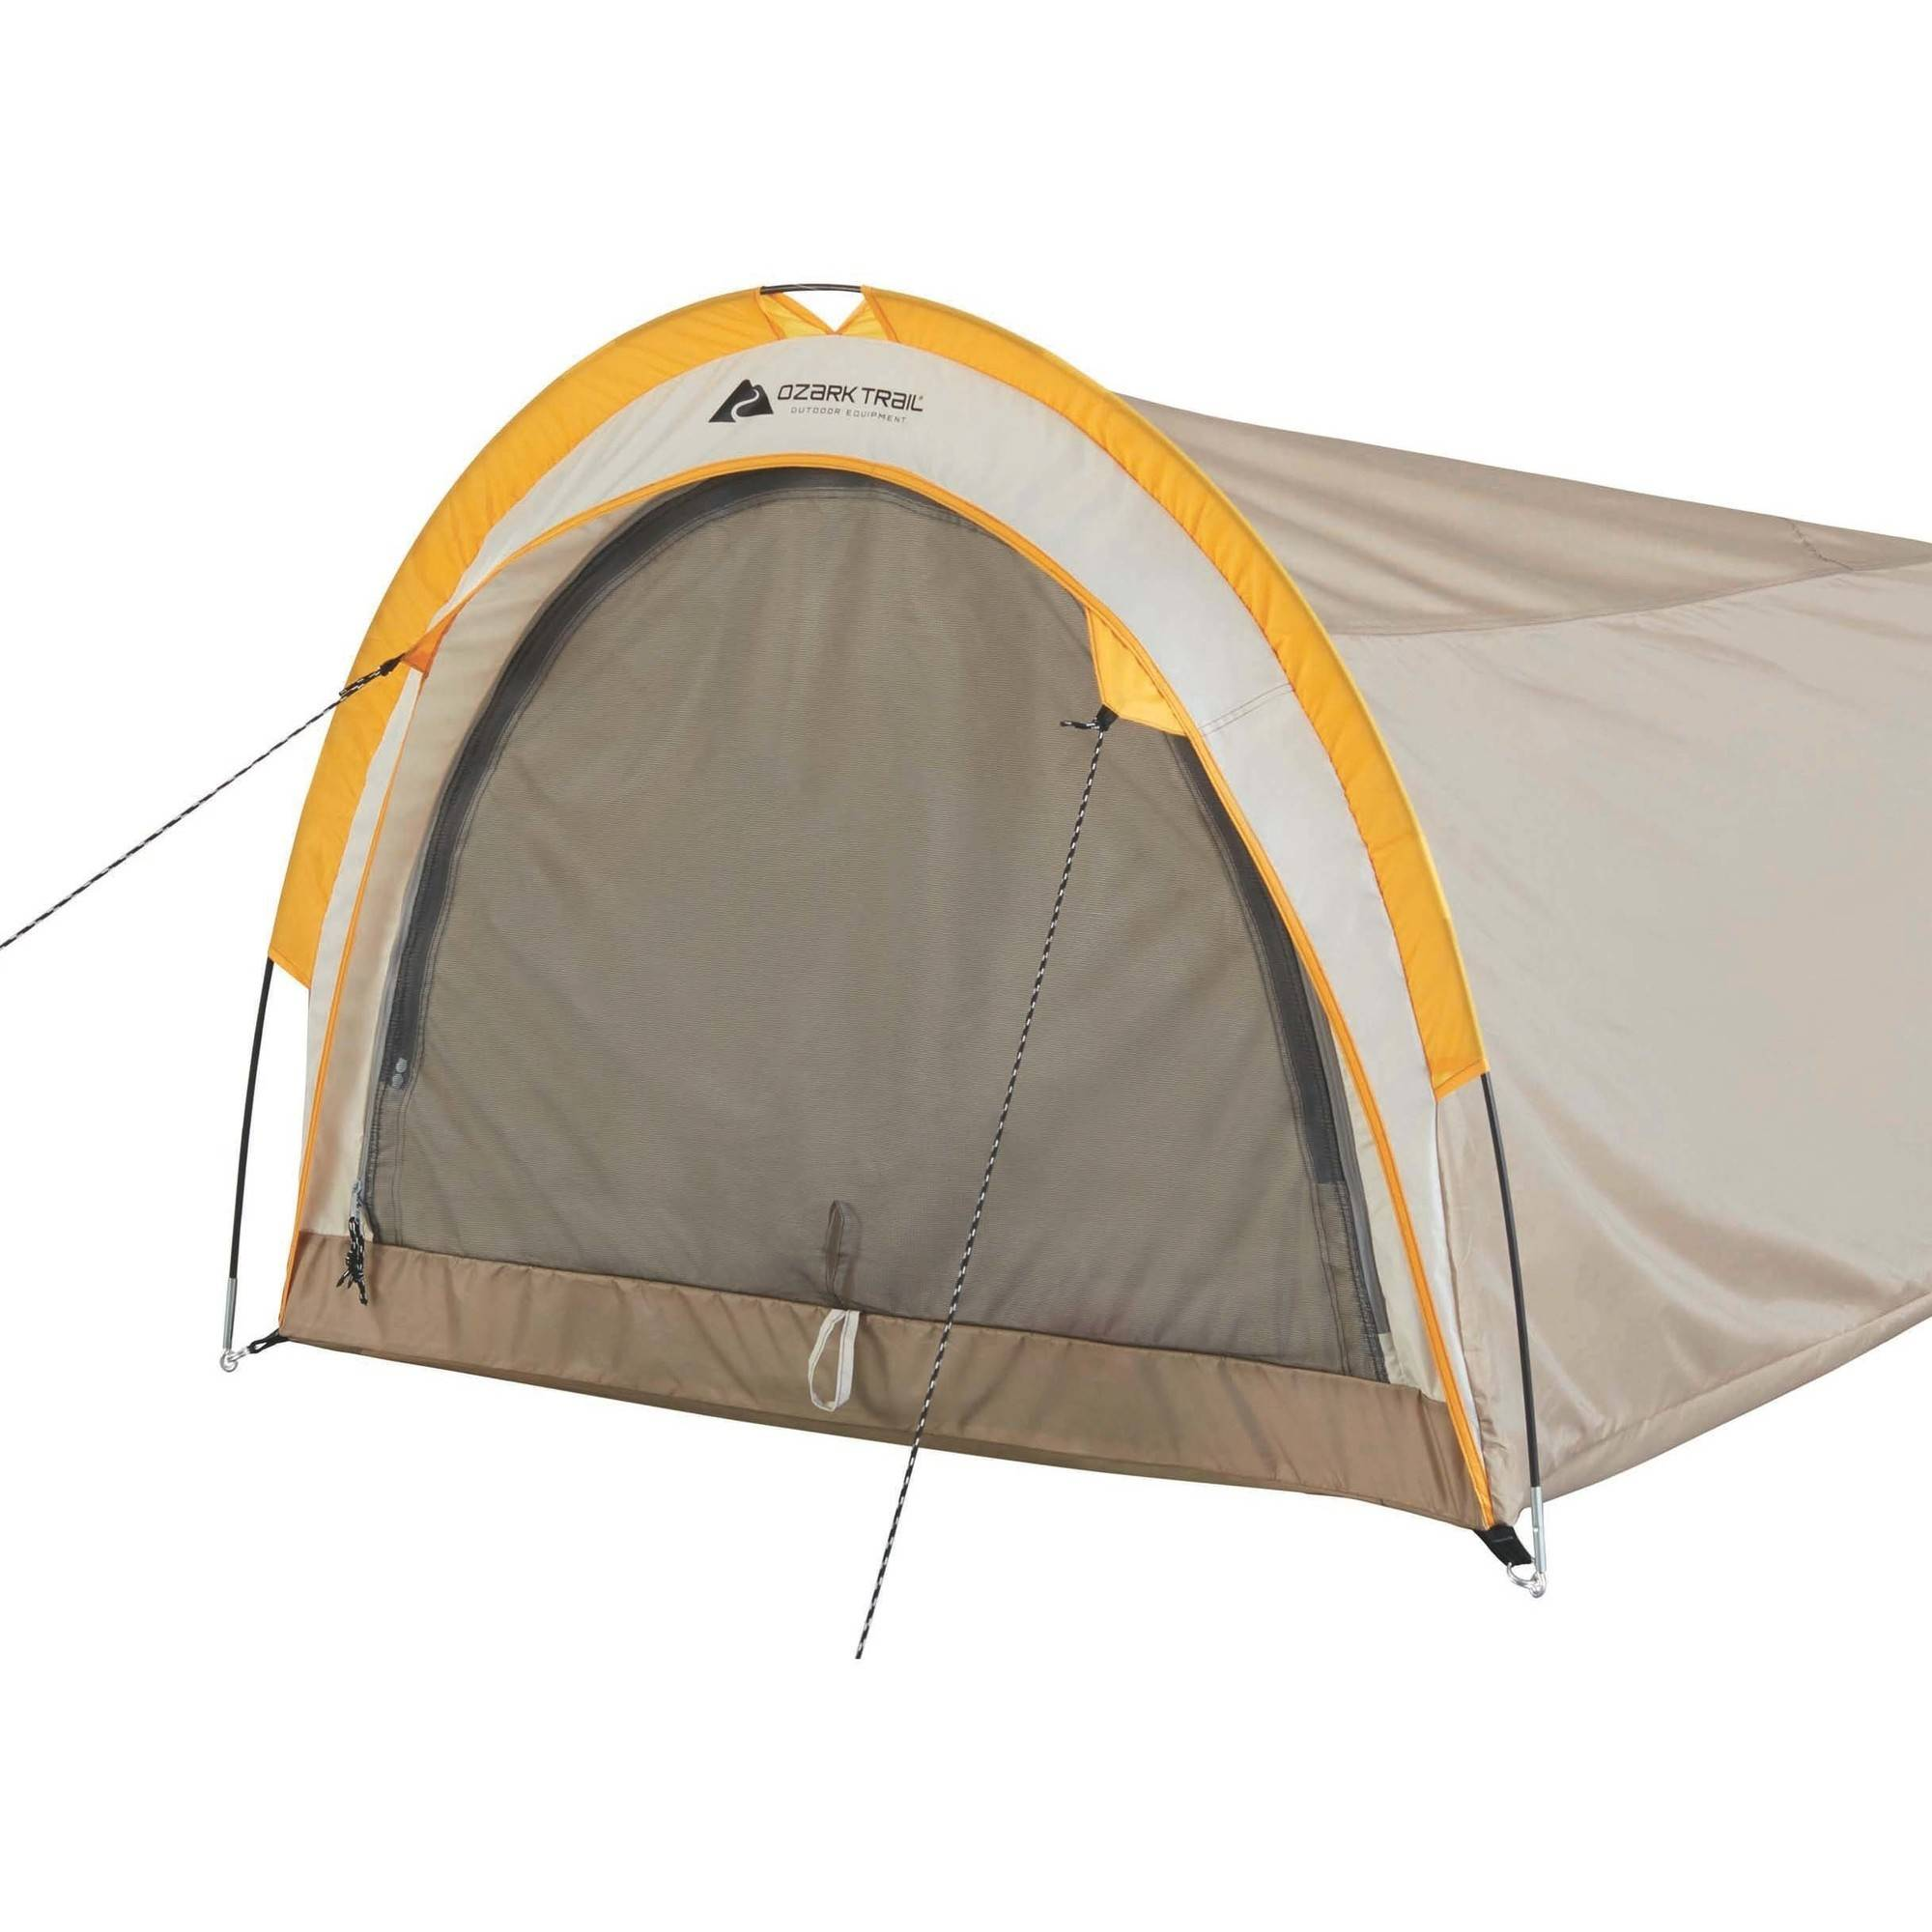 Ozark Trail 1-Person Backpacking Tent 2017 Version Image 2 of 3  sc 1 st  Walmart.com & Ozark Trail 1-Person Backpacking Tent 2017 Version - Walmart.com